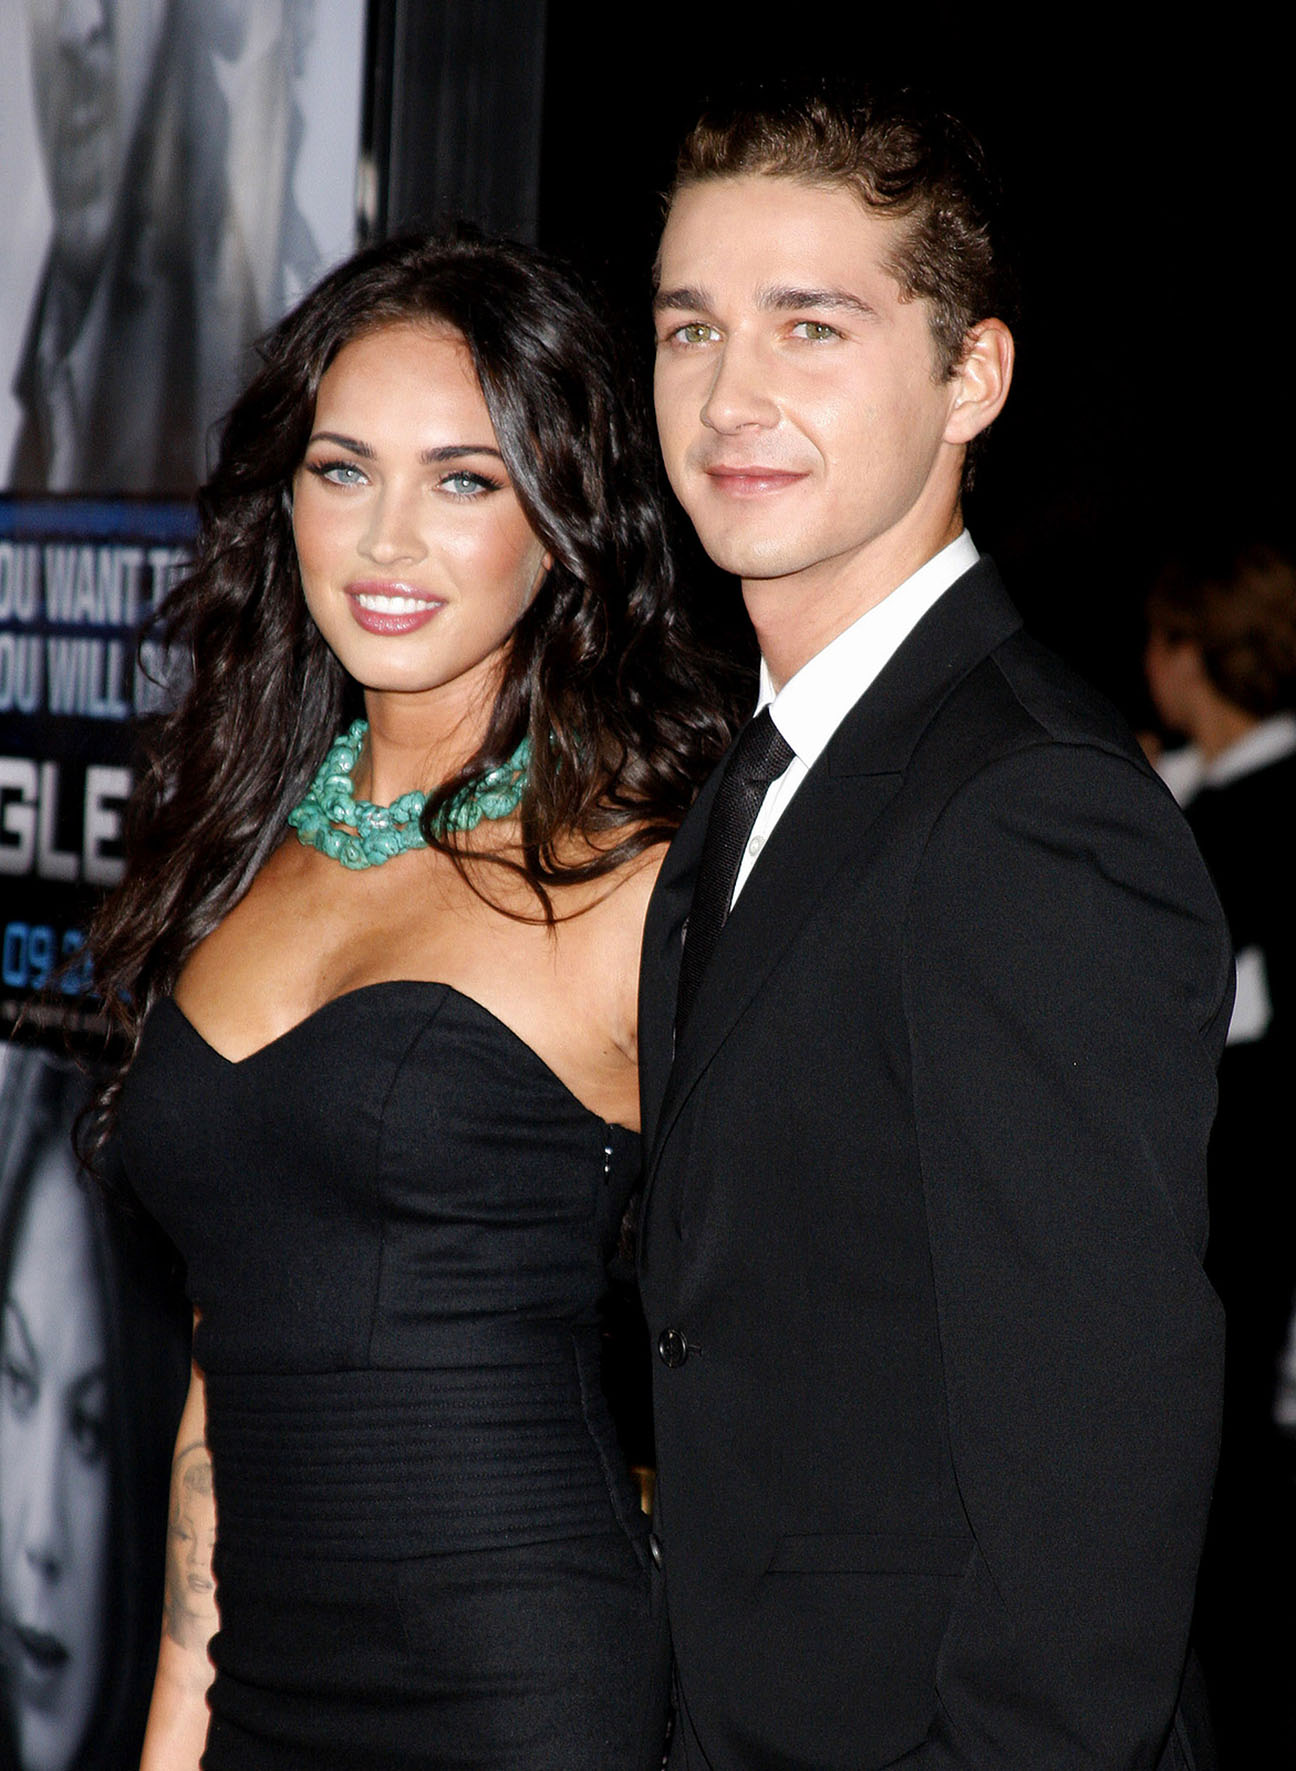 actress Megan Fox poses with co-star, Shia LaBeuf during the premiere of EAGLE EYE movie, both wearing black. Megan wearing a turquoise green necklace.